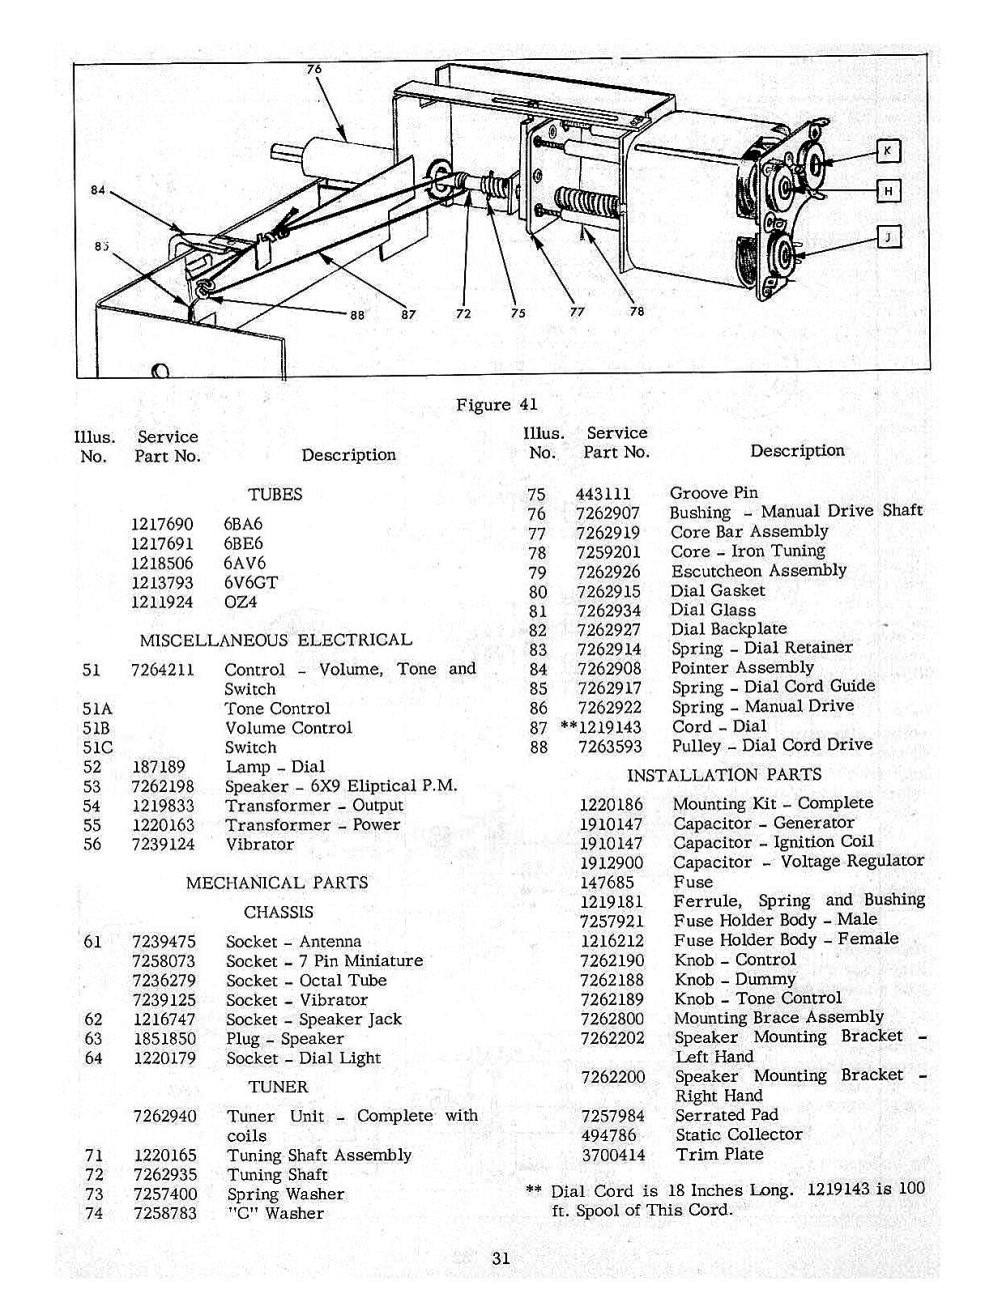 Snap Old Chevrolet Radio Information Online Chevy Manuals Autronic Eye Circuit Diagram For The 1960 Passenger Car 1954 And